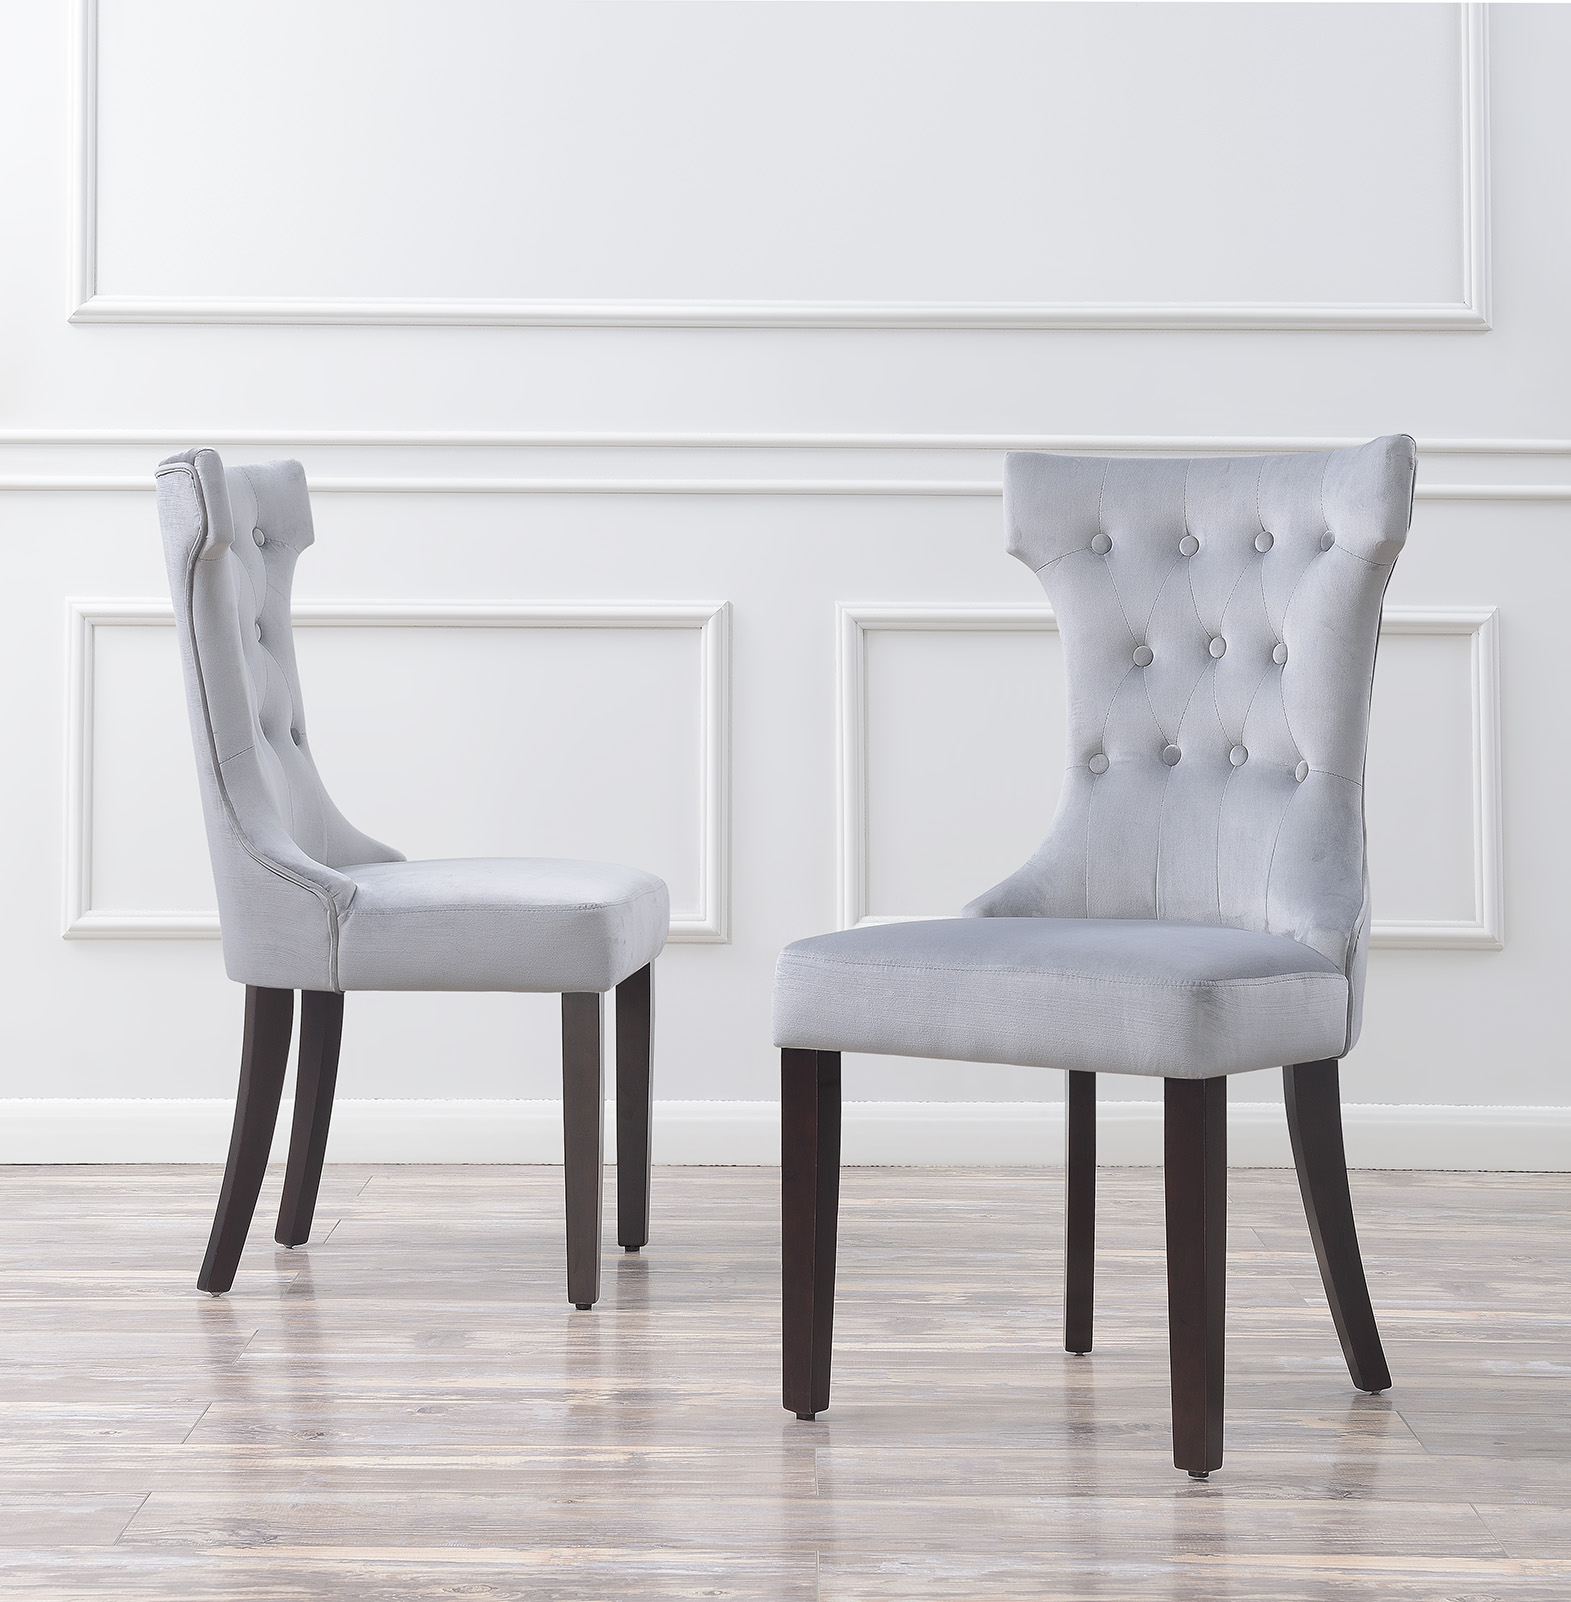 Attrayant Set Of 2 Elegant Tufted Fabric Armless Side